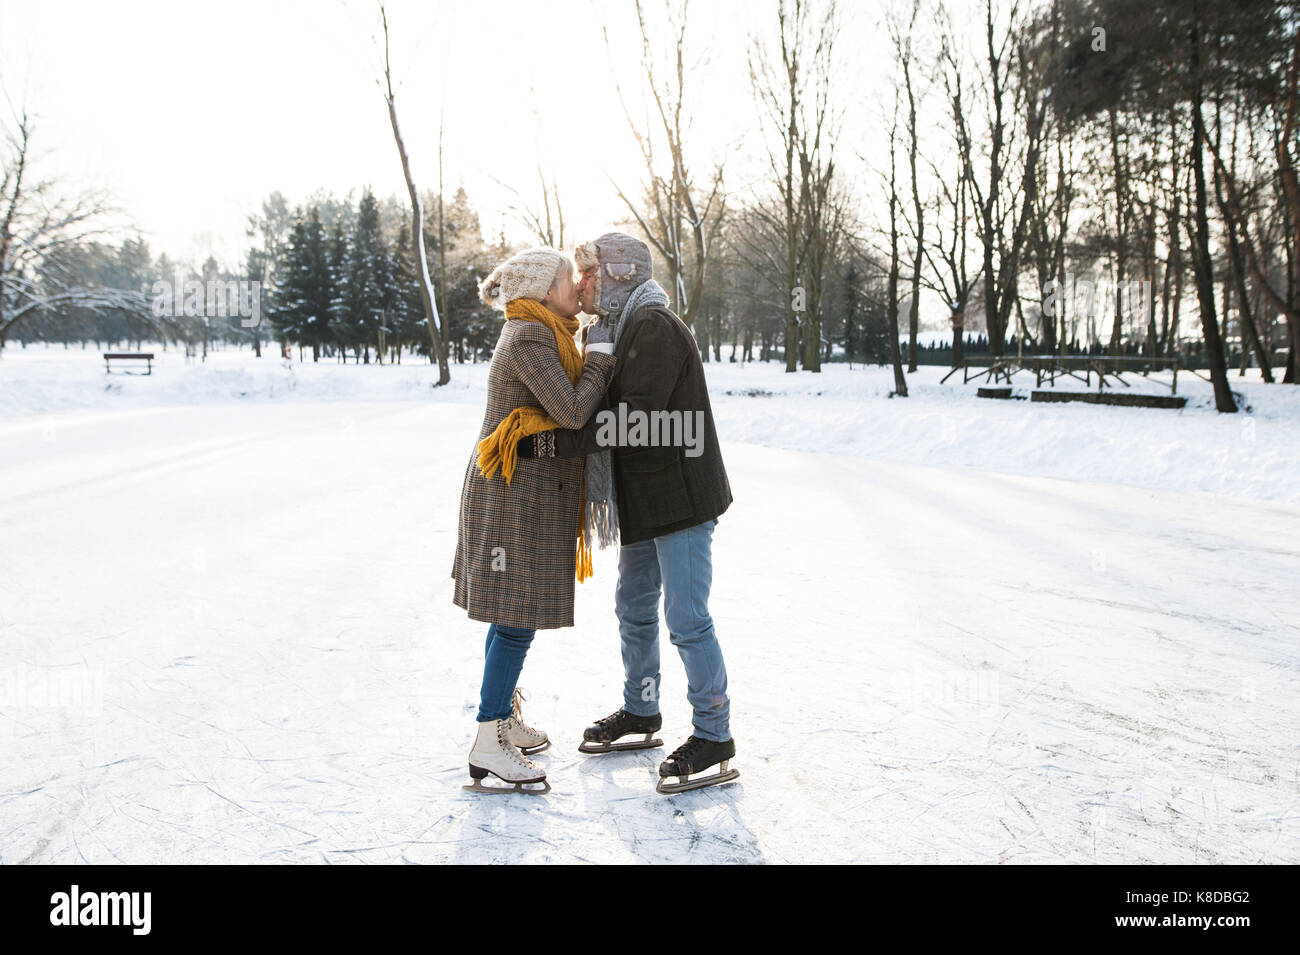 Senior couple in sunny winter nature ice skating. - Stock Image